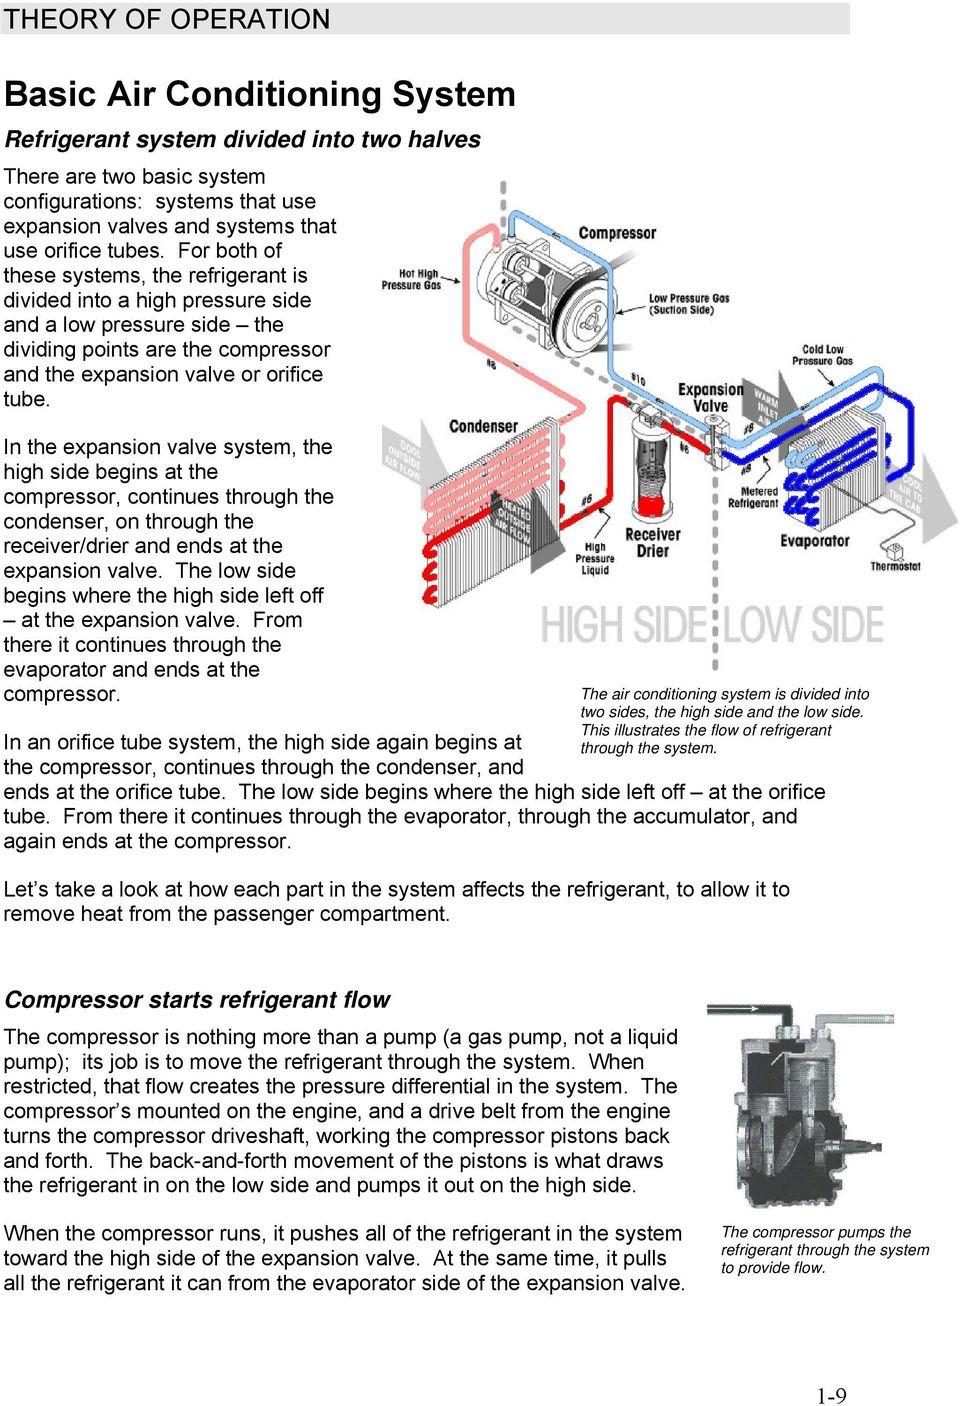 In the expansion valve system, the high side begins at the compressor, continues through the condenser, on through the receiver/drier and ends at the expansion valve.